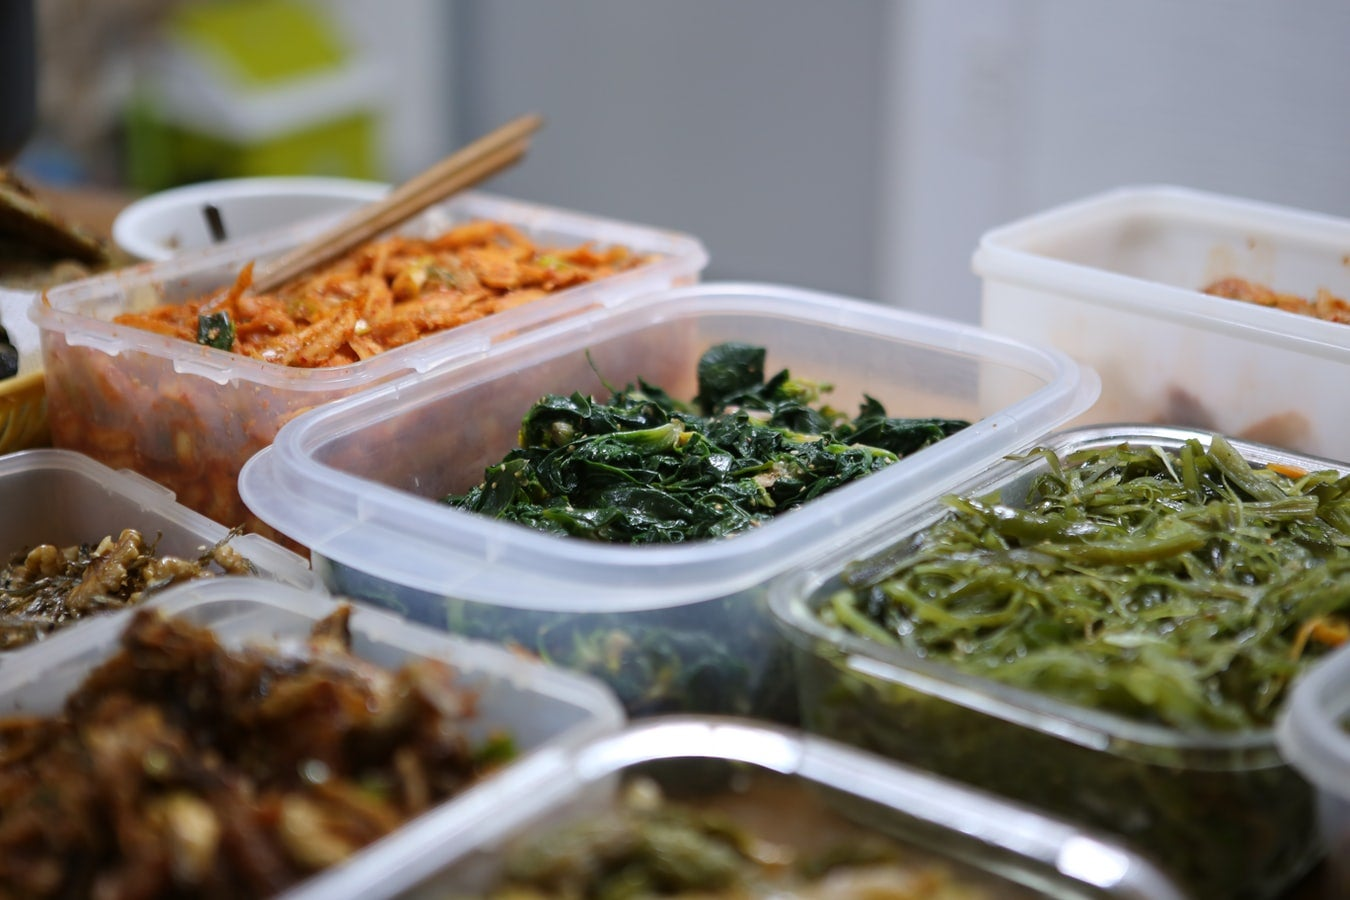 The best food containers help you keep food from spoiling and spilling.